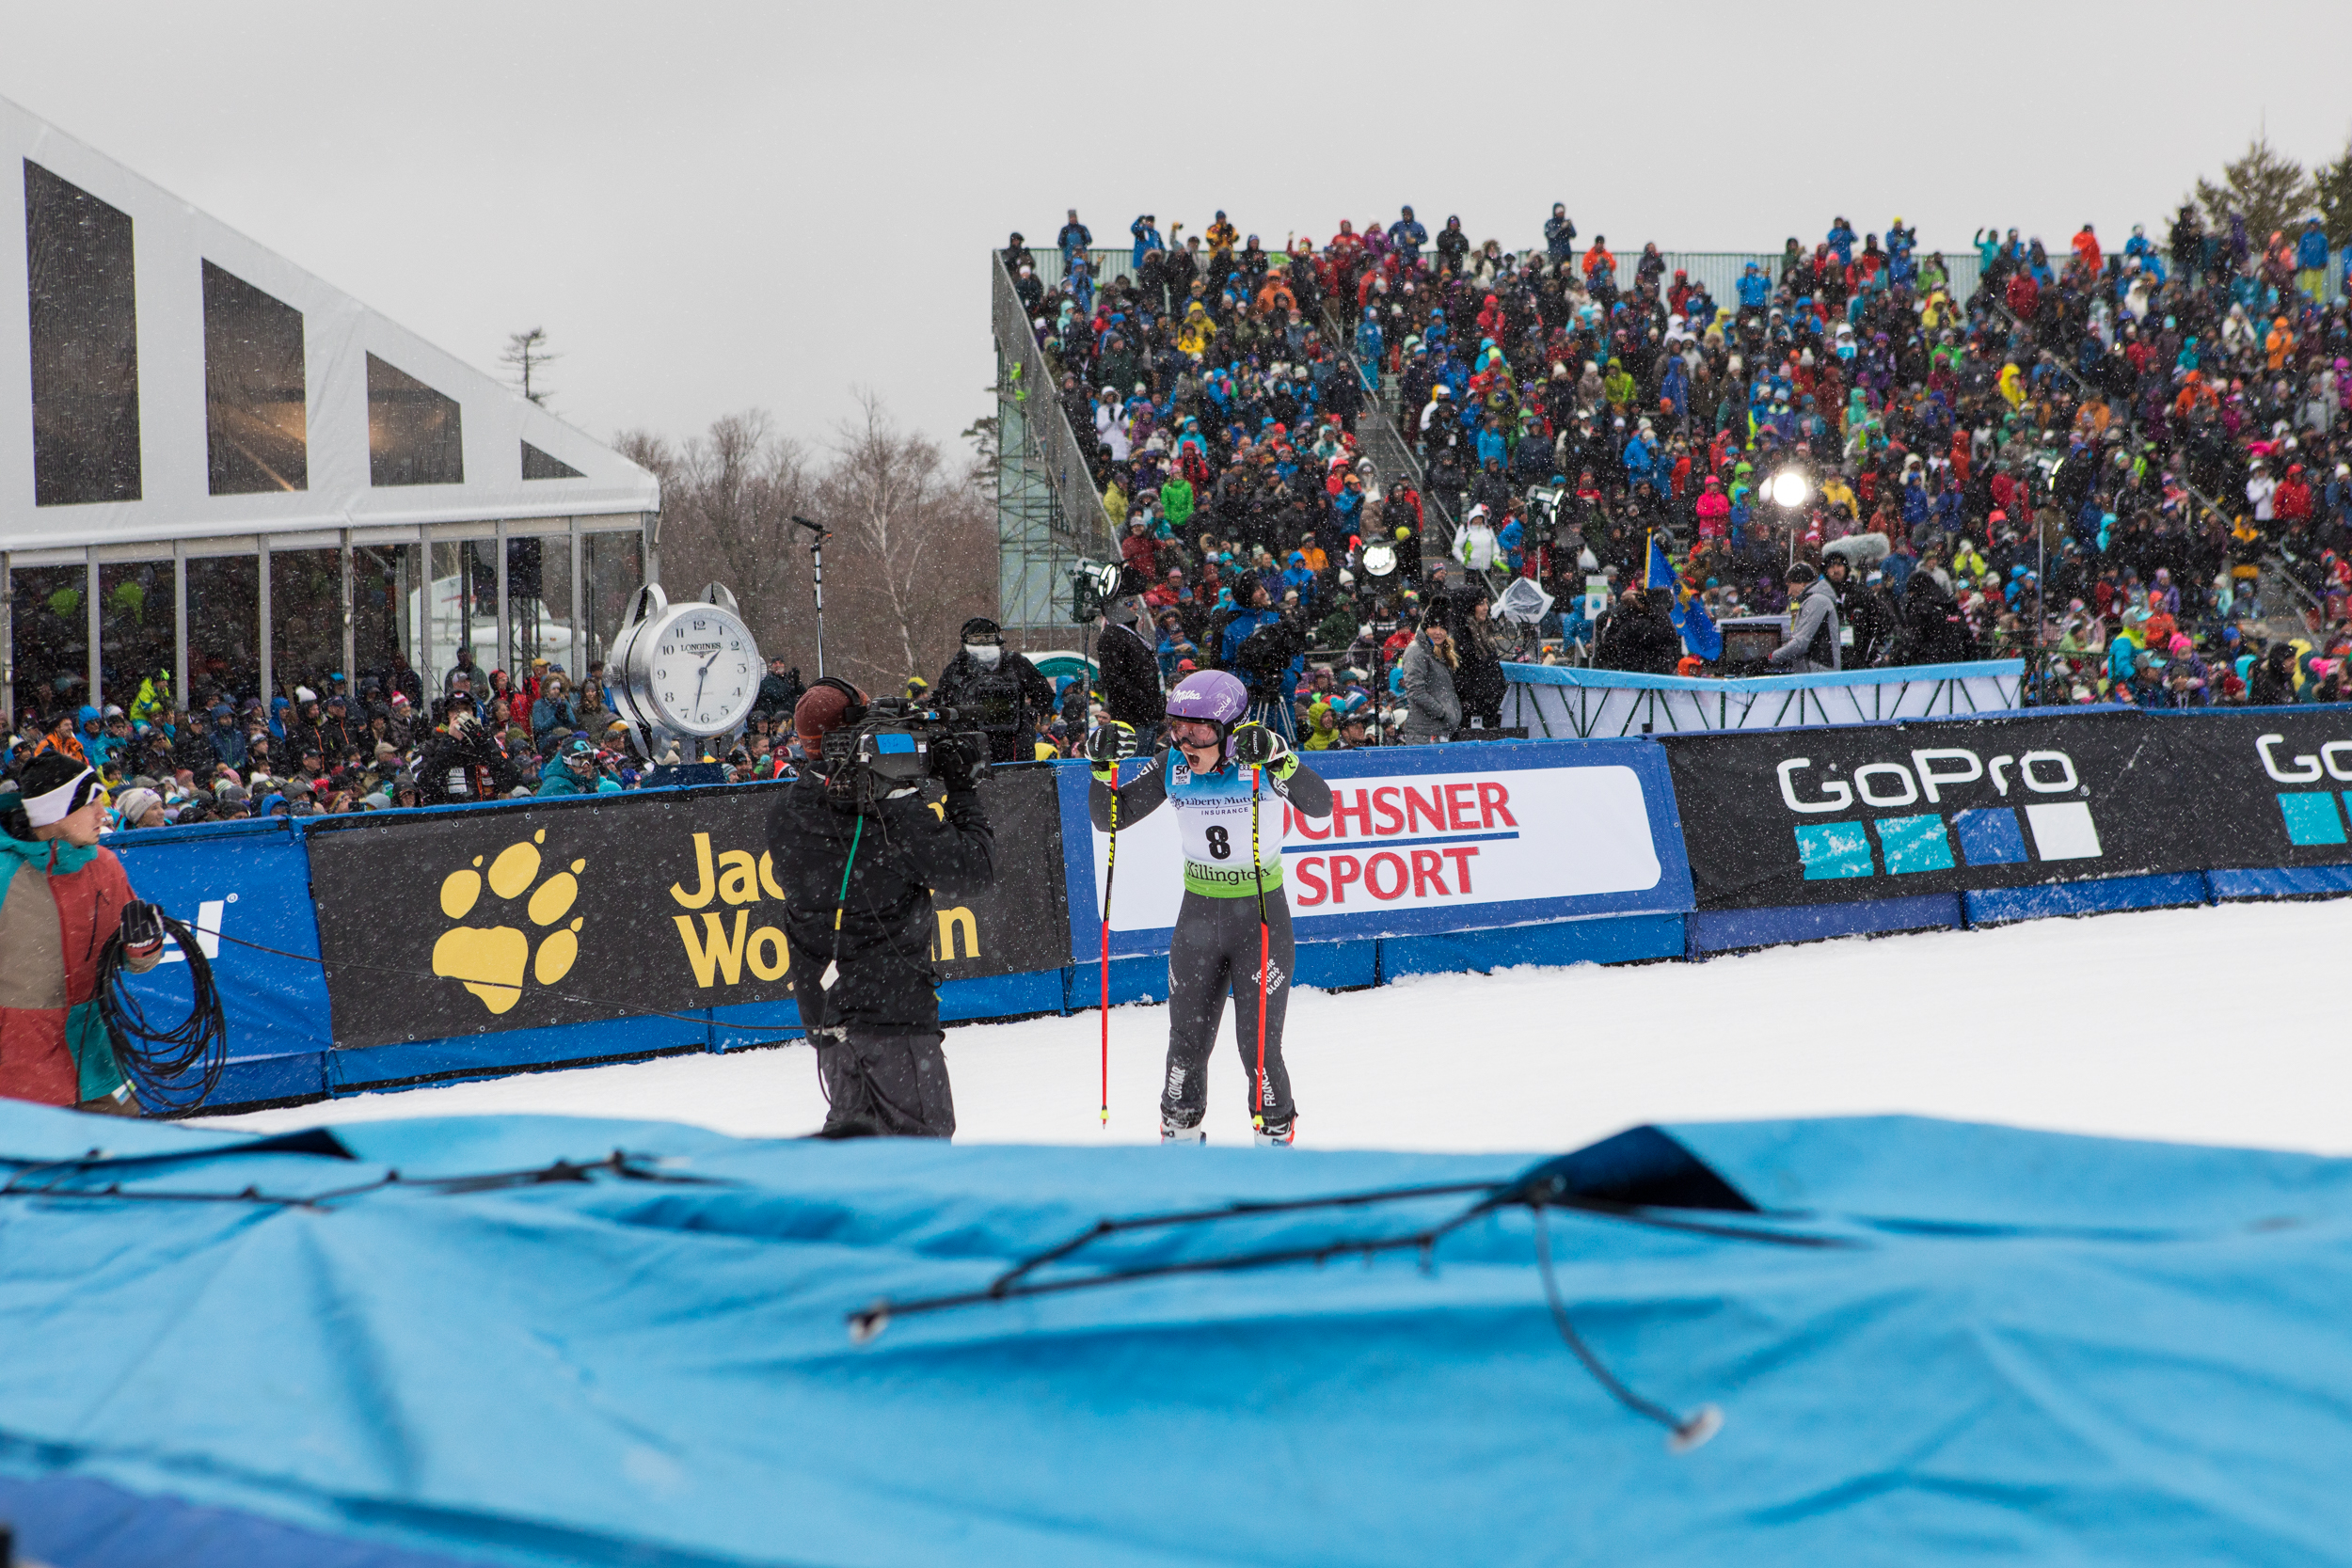 Killington-World-Cup-Tessa-Worley-Finish-2.jpg